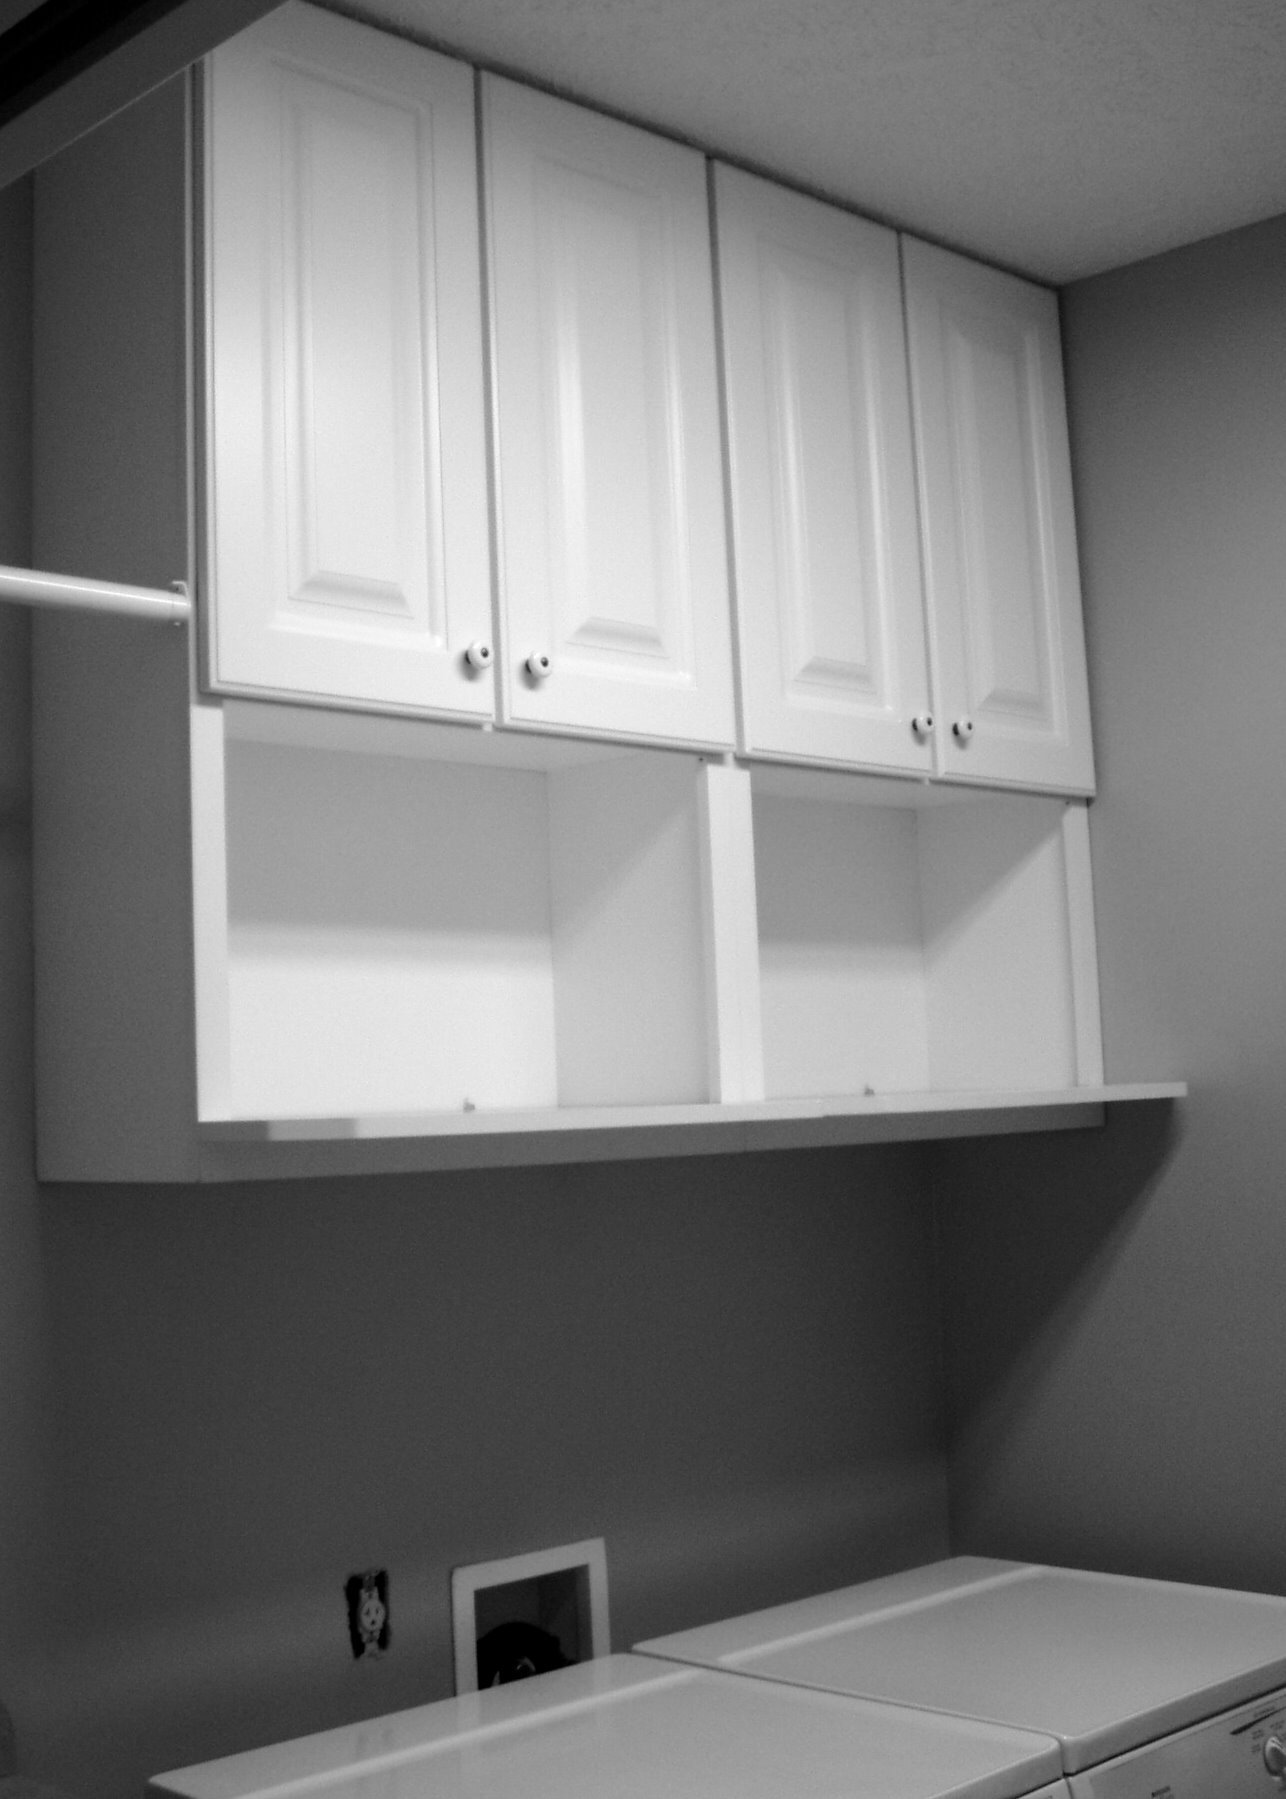 Ing Laundry Room Storage S Ideas Of White Painted Wooden Wall With Shelves Designed Acnn Decor